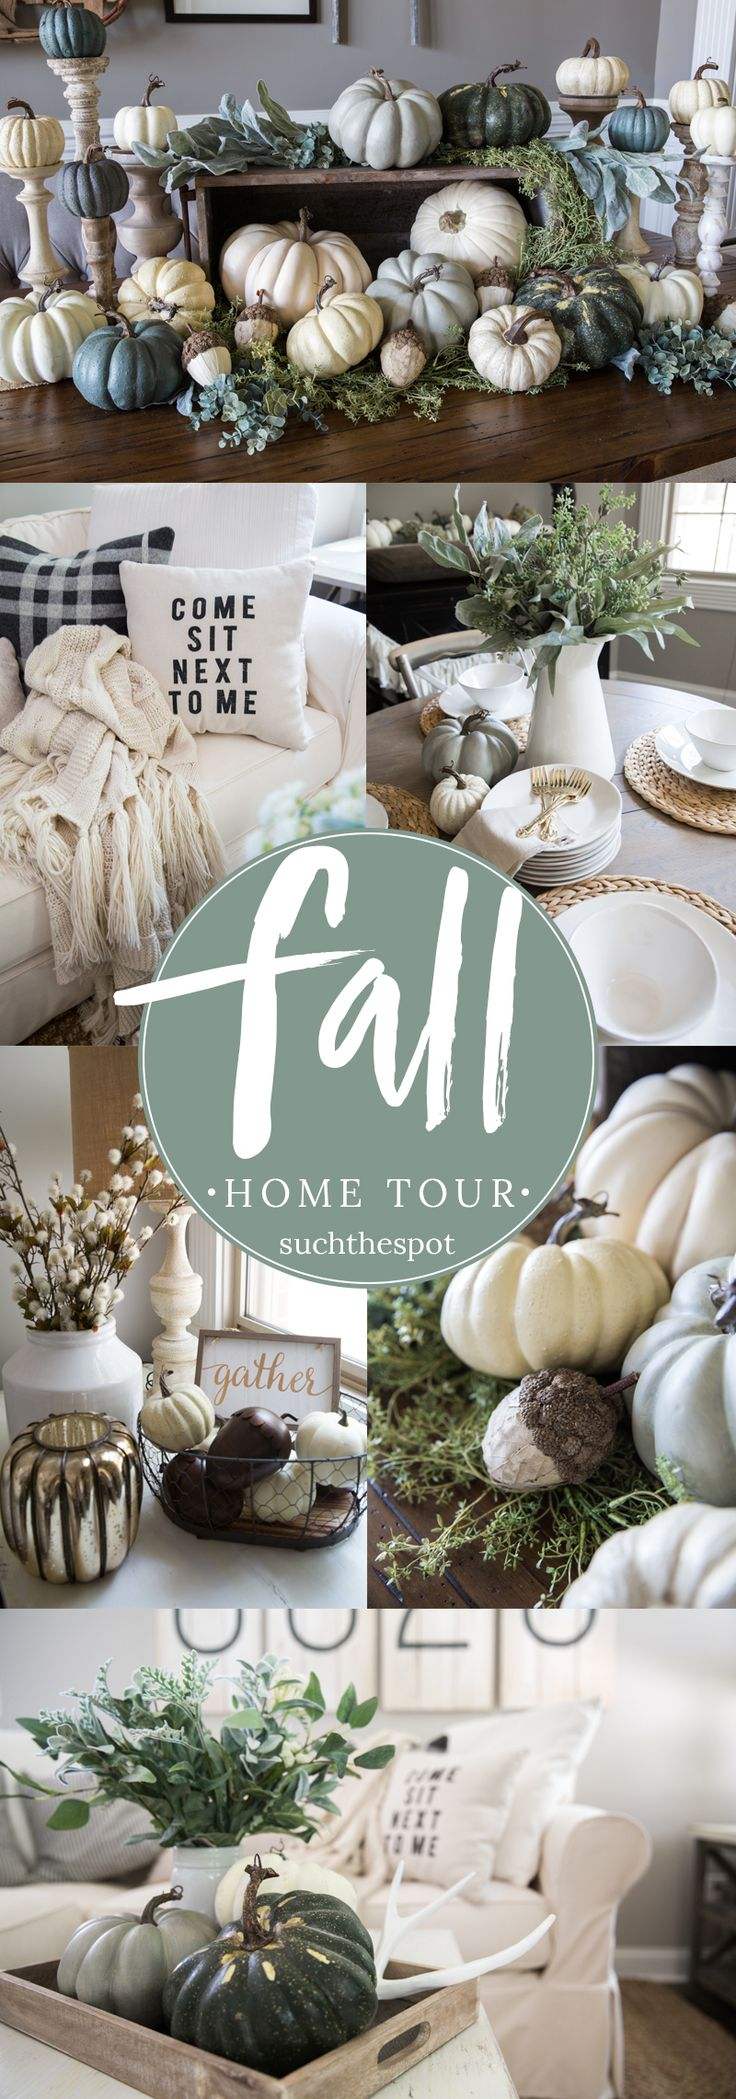 Fall Decor Ideas – From the family room to the farm table centerpiece, I'm s…